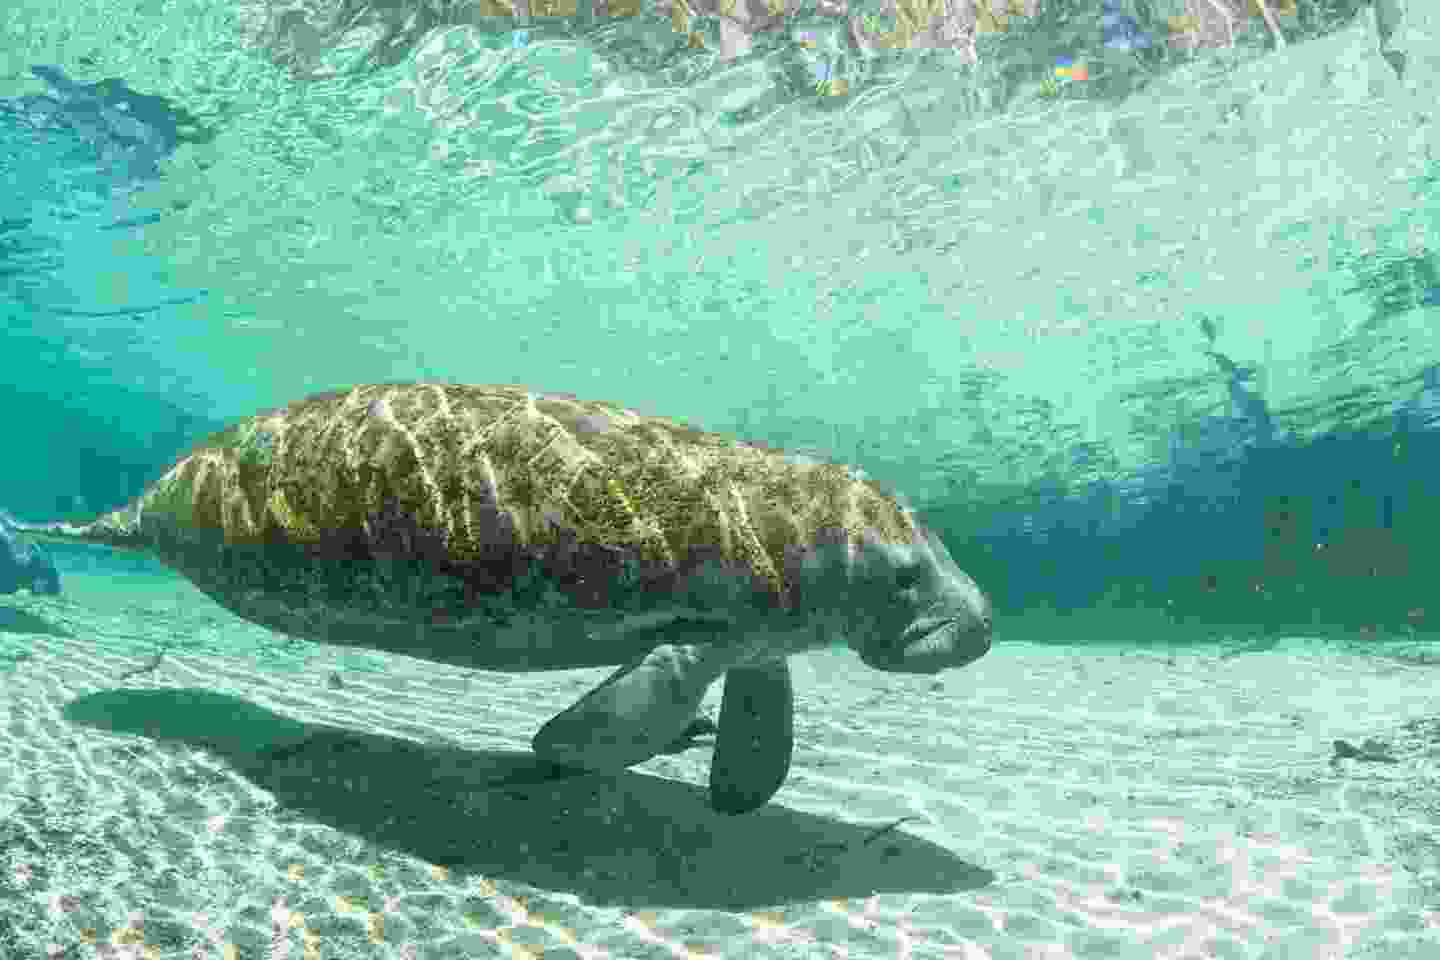 Manatees in the Crystal River, Florida (Shutterstock)